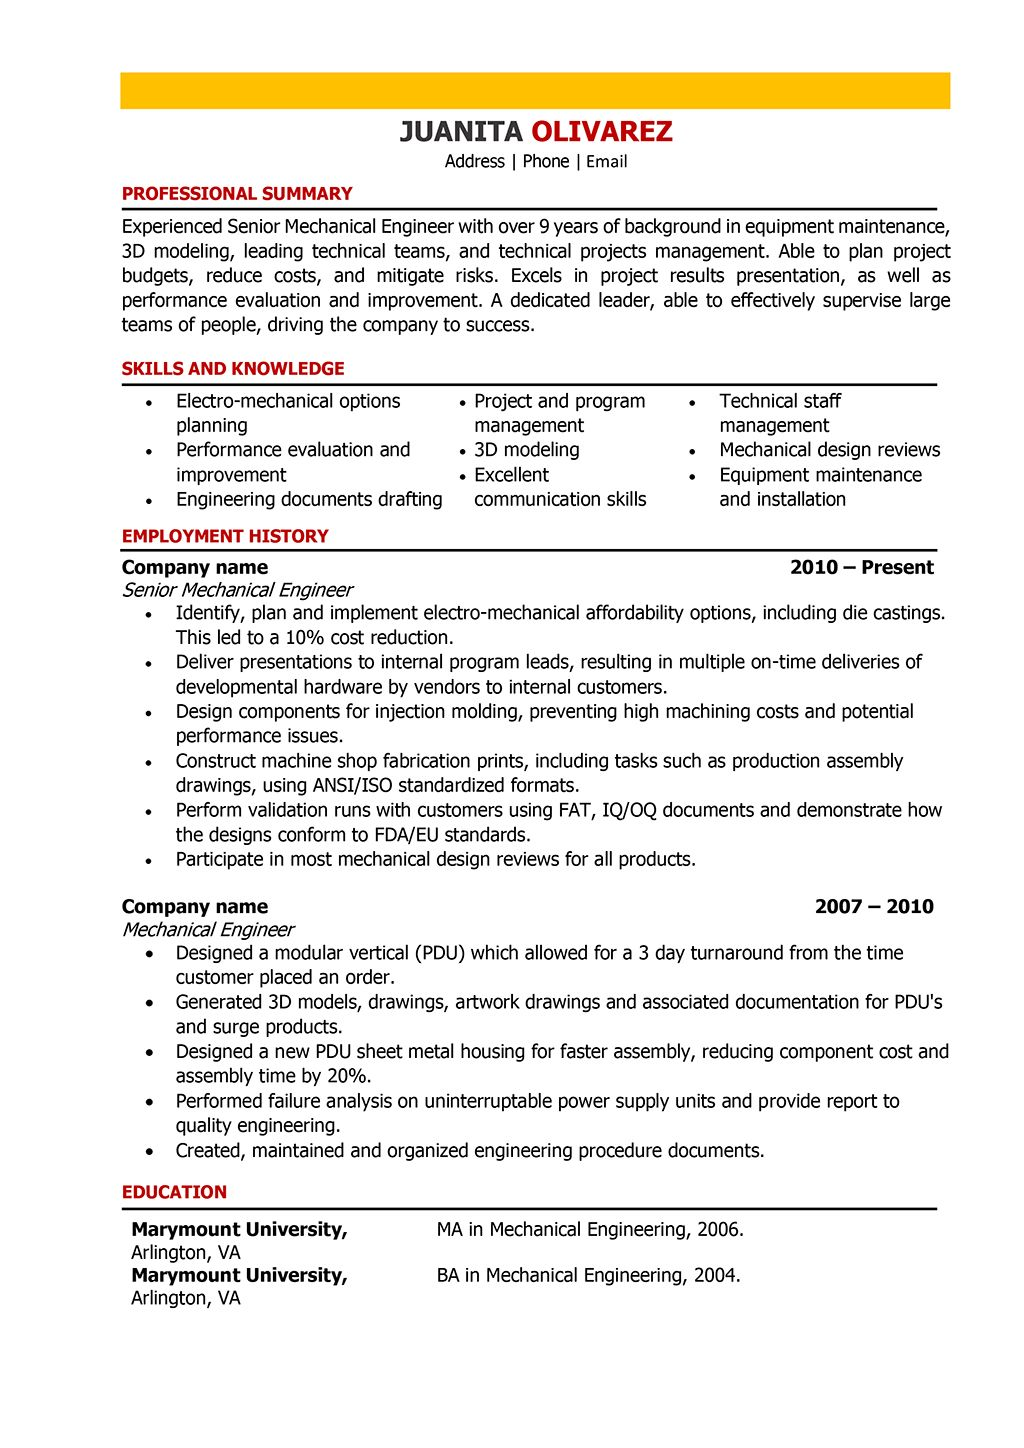 Mechanical Engineer Resume Samples And Writing Guide 10 Examples Image Result For Resume